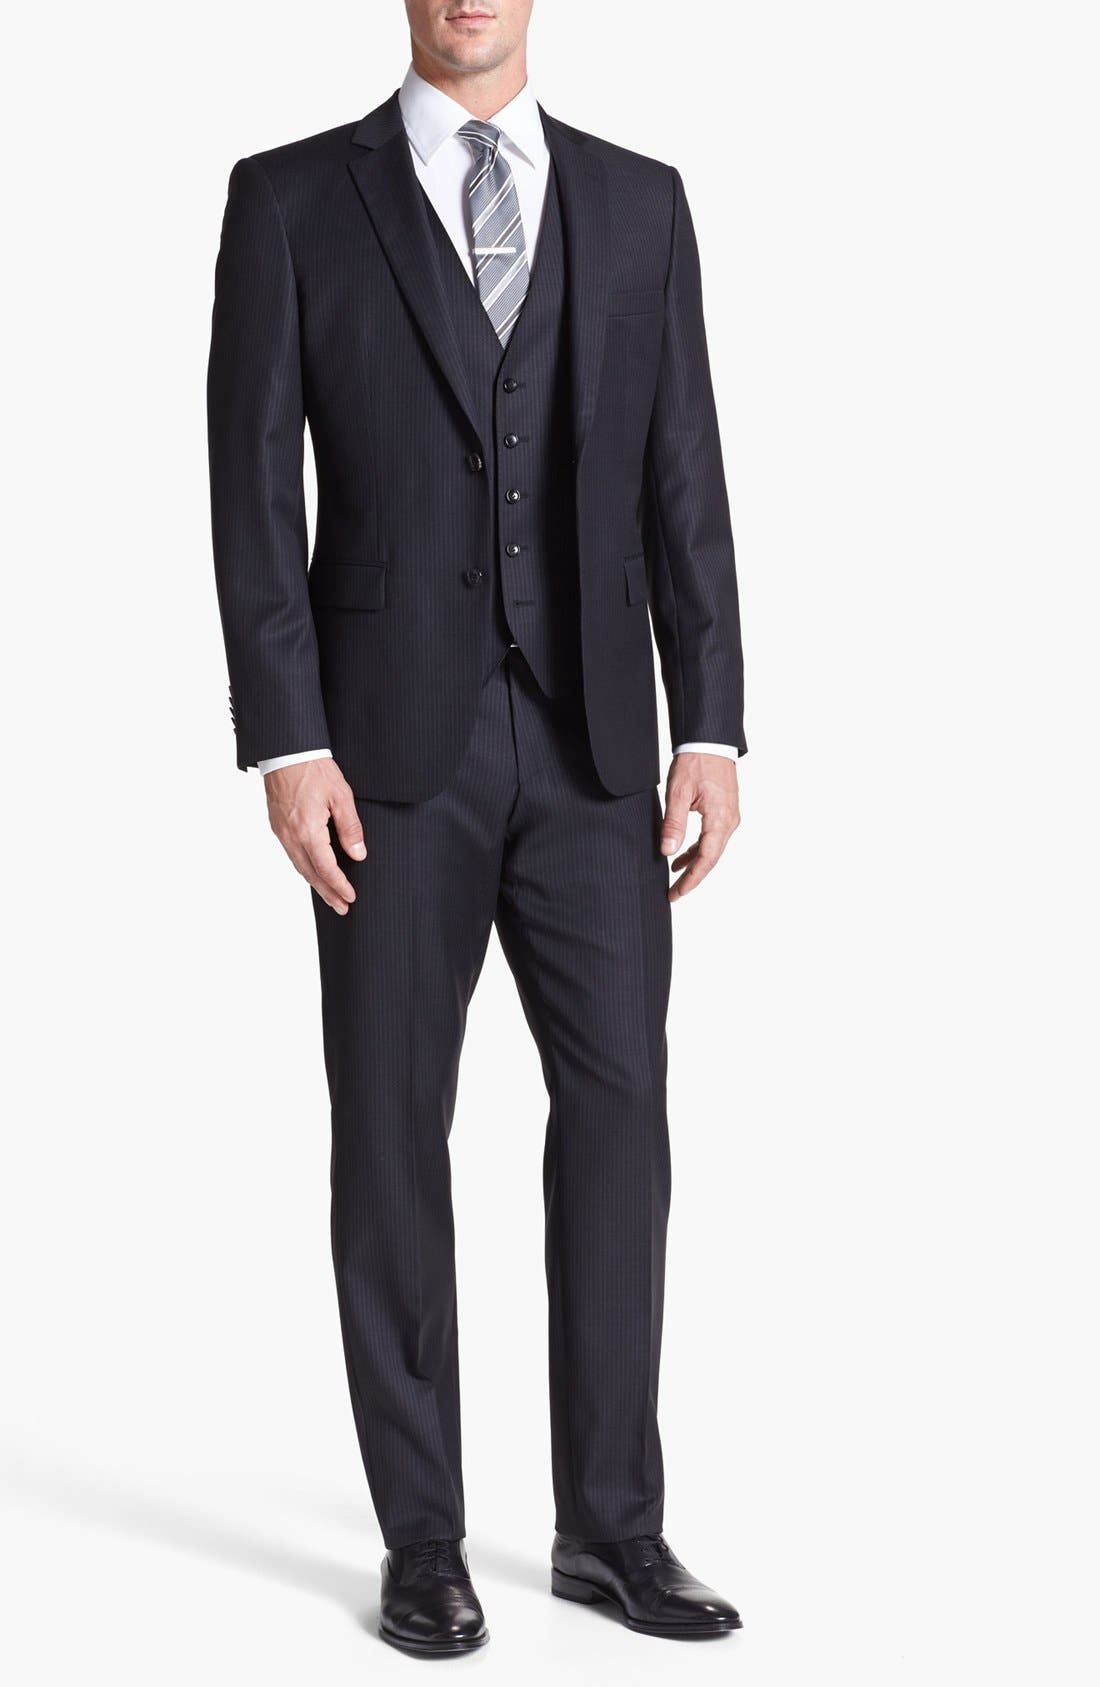 Alternate Image 1 Selected - BOSS HUGO BOSS 'Howard/Court' Trim Fit Three Piece Suit